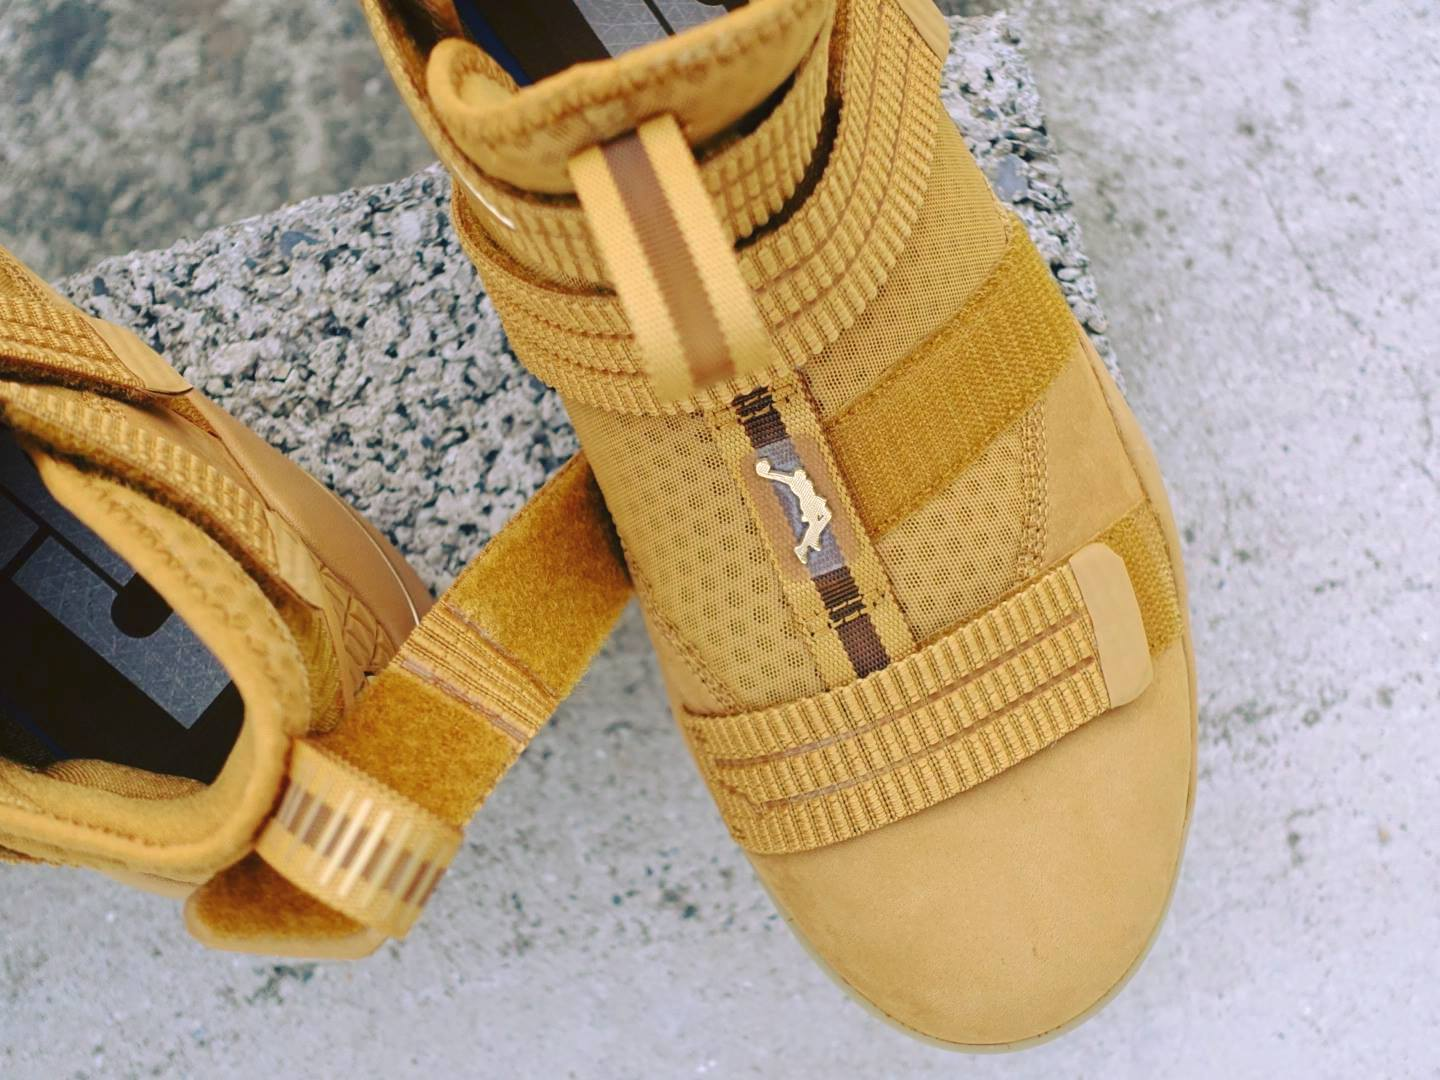 Nike LeBron Soldier 11 SFG Wheat Release Date 897647-700 (2)